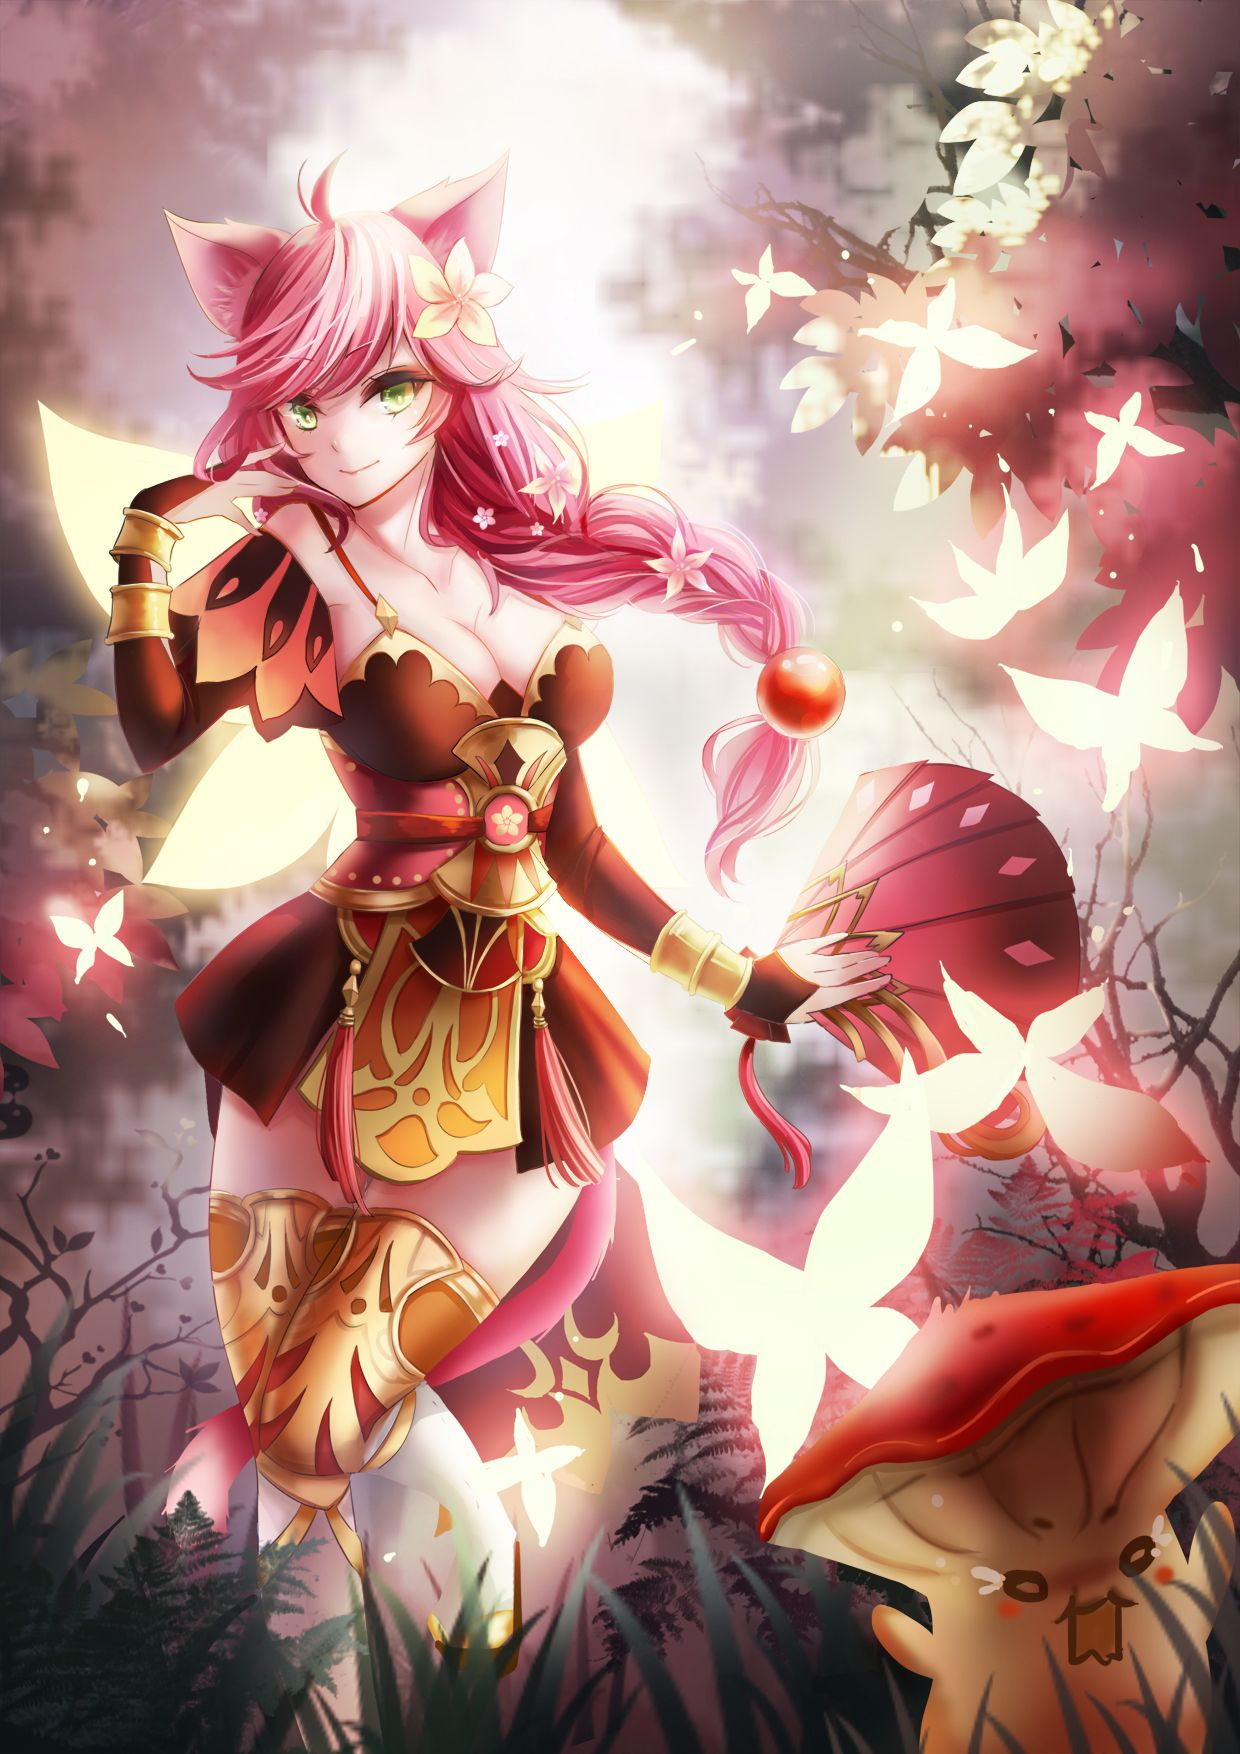 Anime Characters Knights : Seven knights k pinterest knight anime and characters